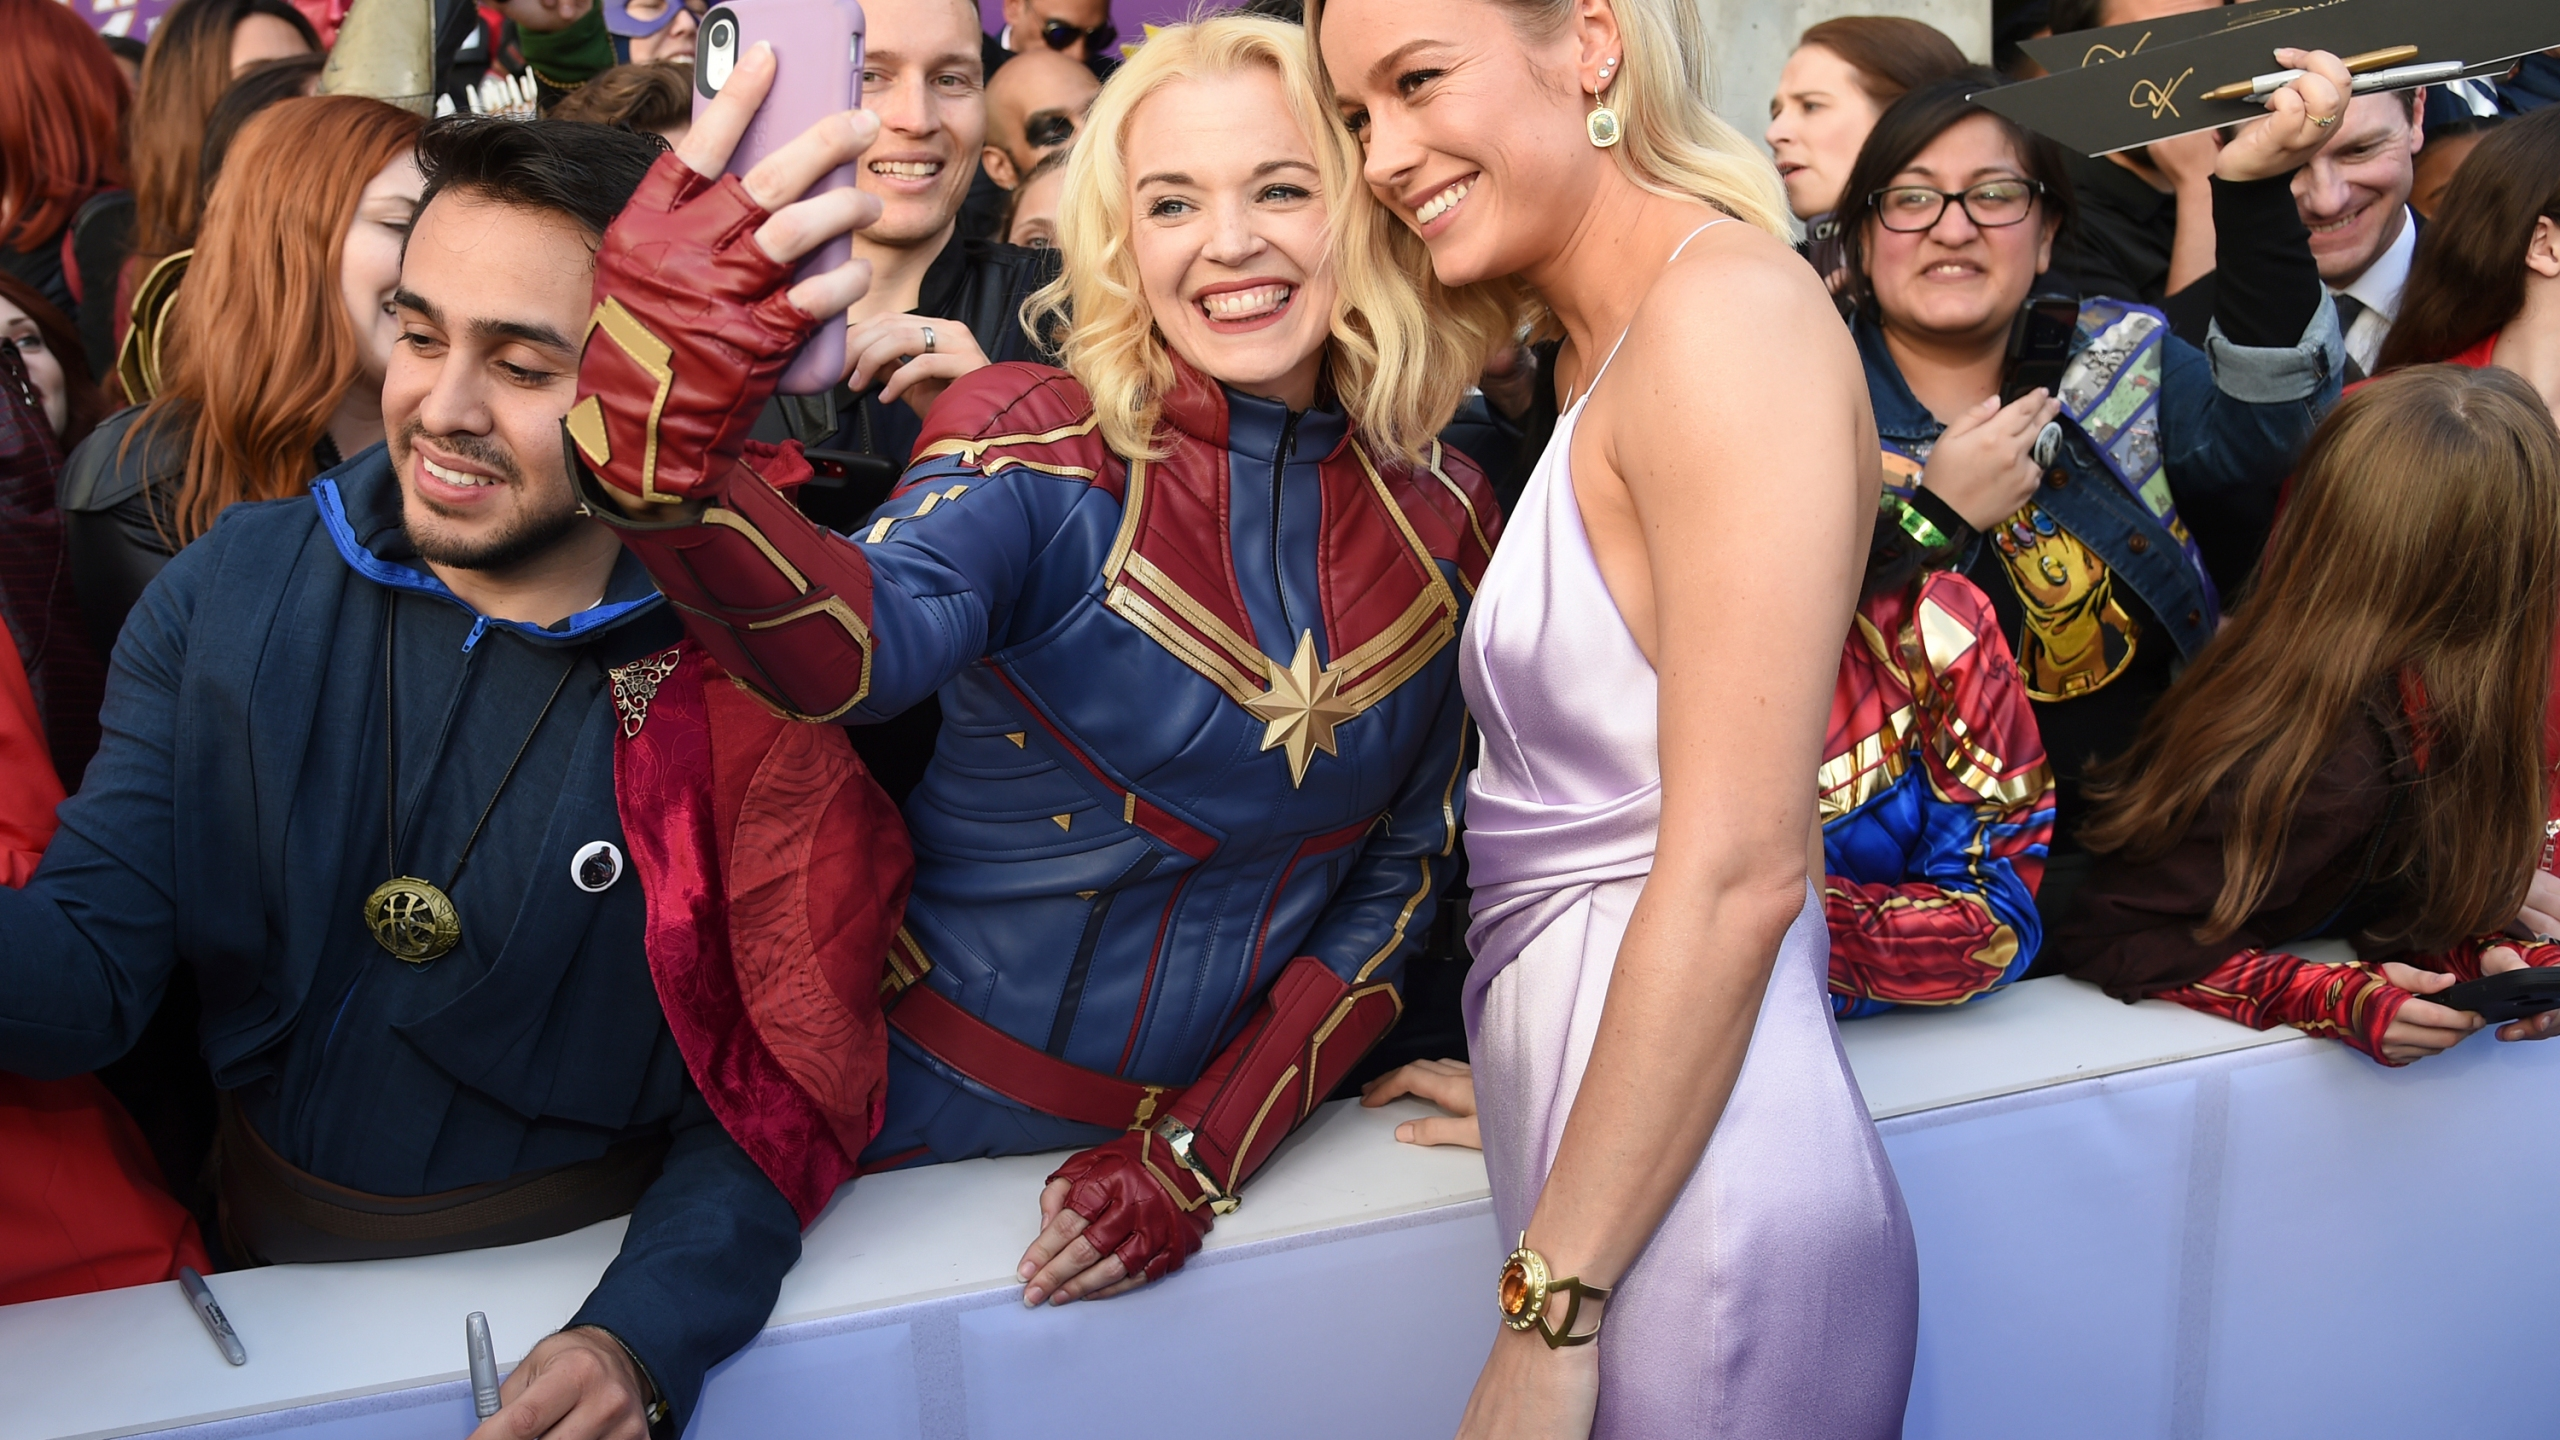 LA_Premiere_of__Avengers__Endgame__-_Red_Carpet_07105-159532.jpg29204366